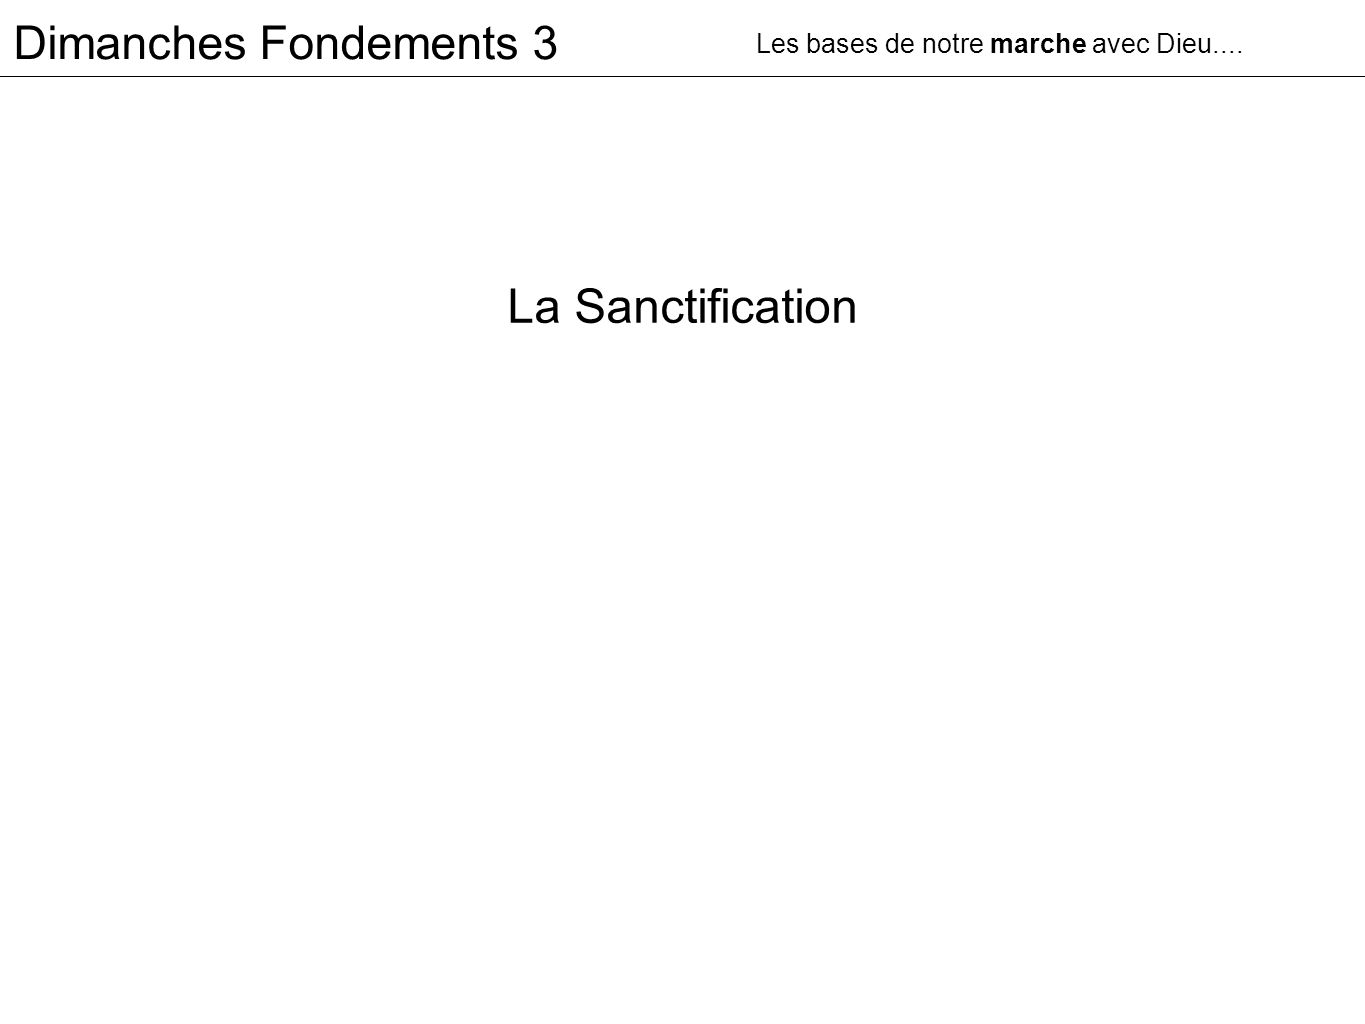 La Sanctification Dimanches Fondements 3